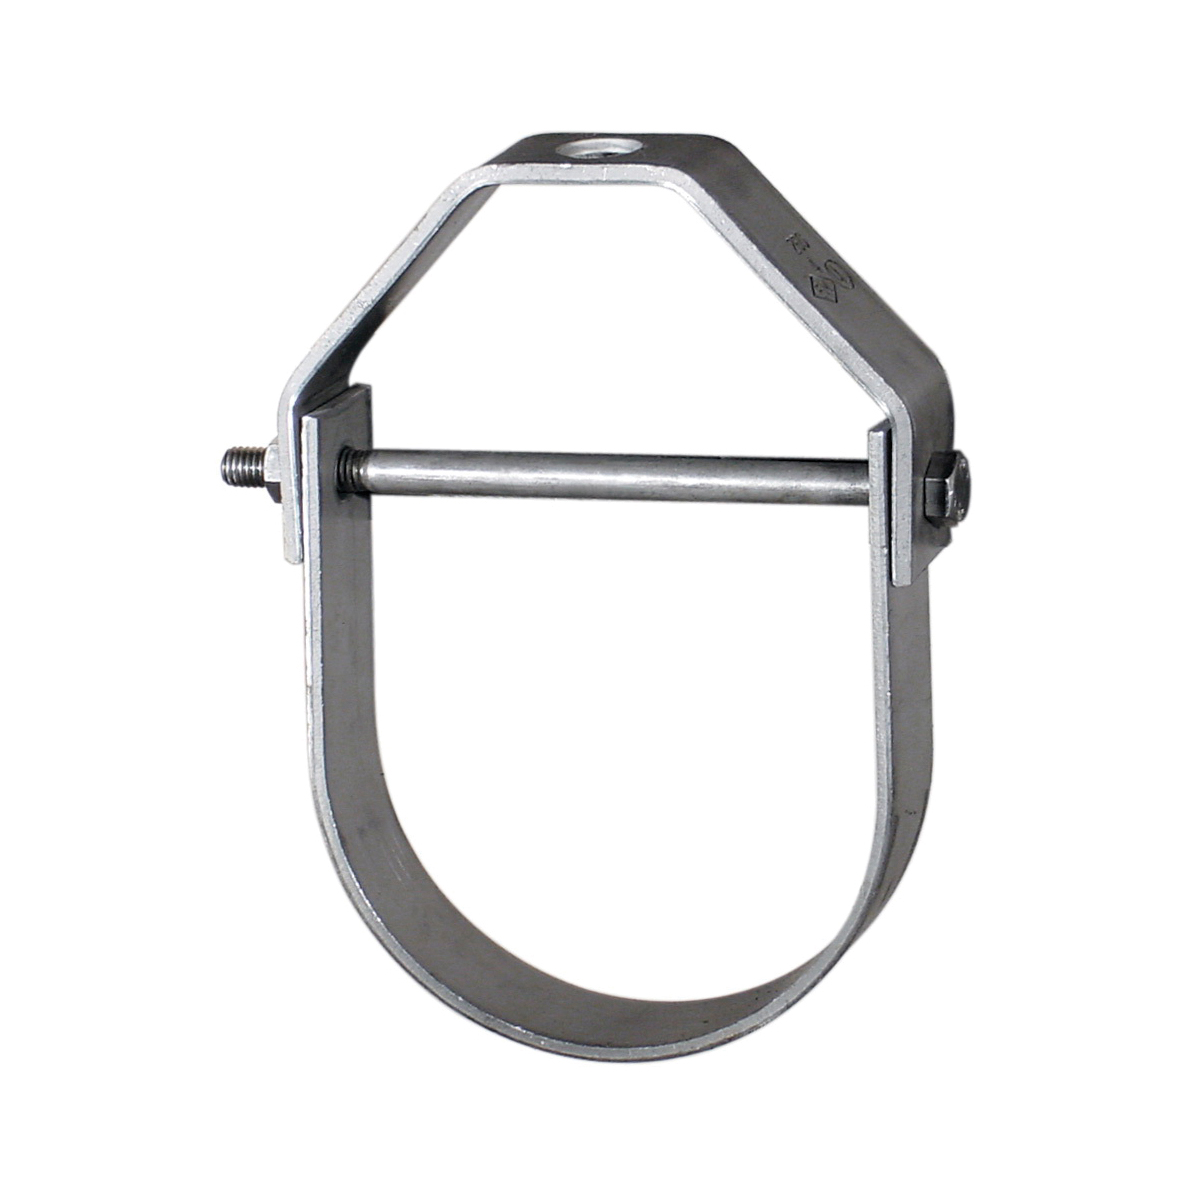 Anvil® 0500359666 FIG 260 Adjustable Clevis Hanger, 5 in Pipe, 5/8 in Rod, 1430 lb Load, Carbon Steel, Galvanized